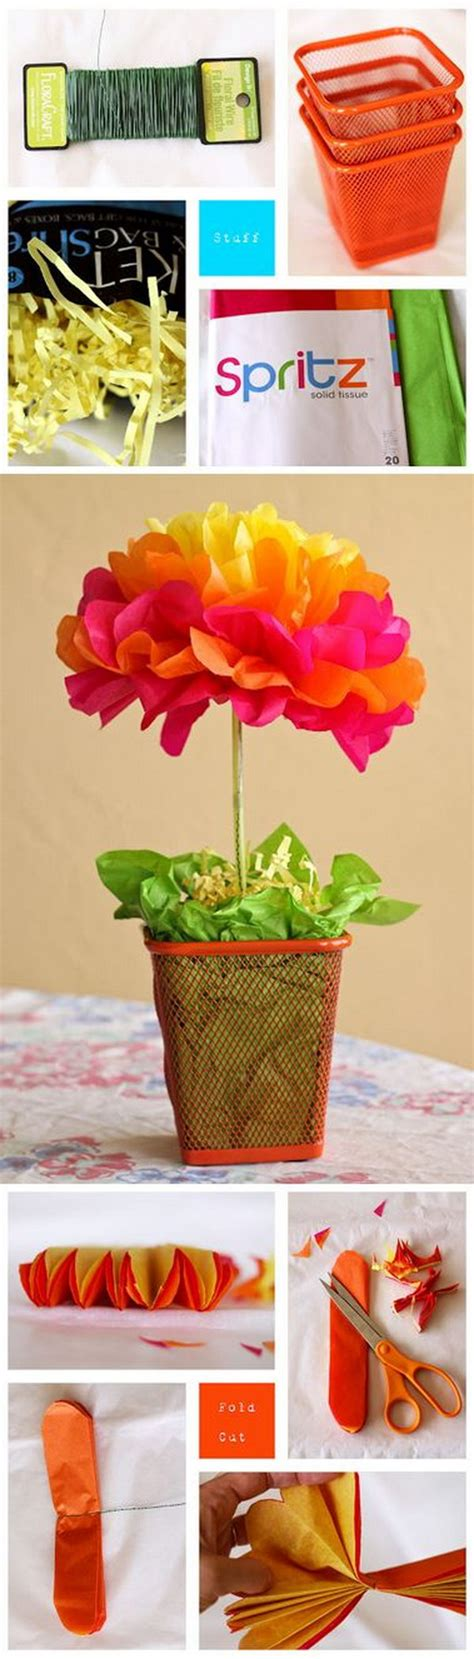 How To Make Centerpieces With Tissue Paper - create these easy tissue paper crafts and with